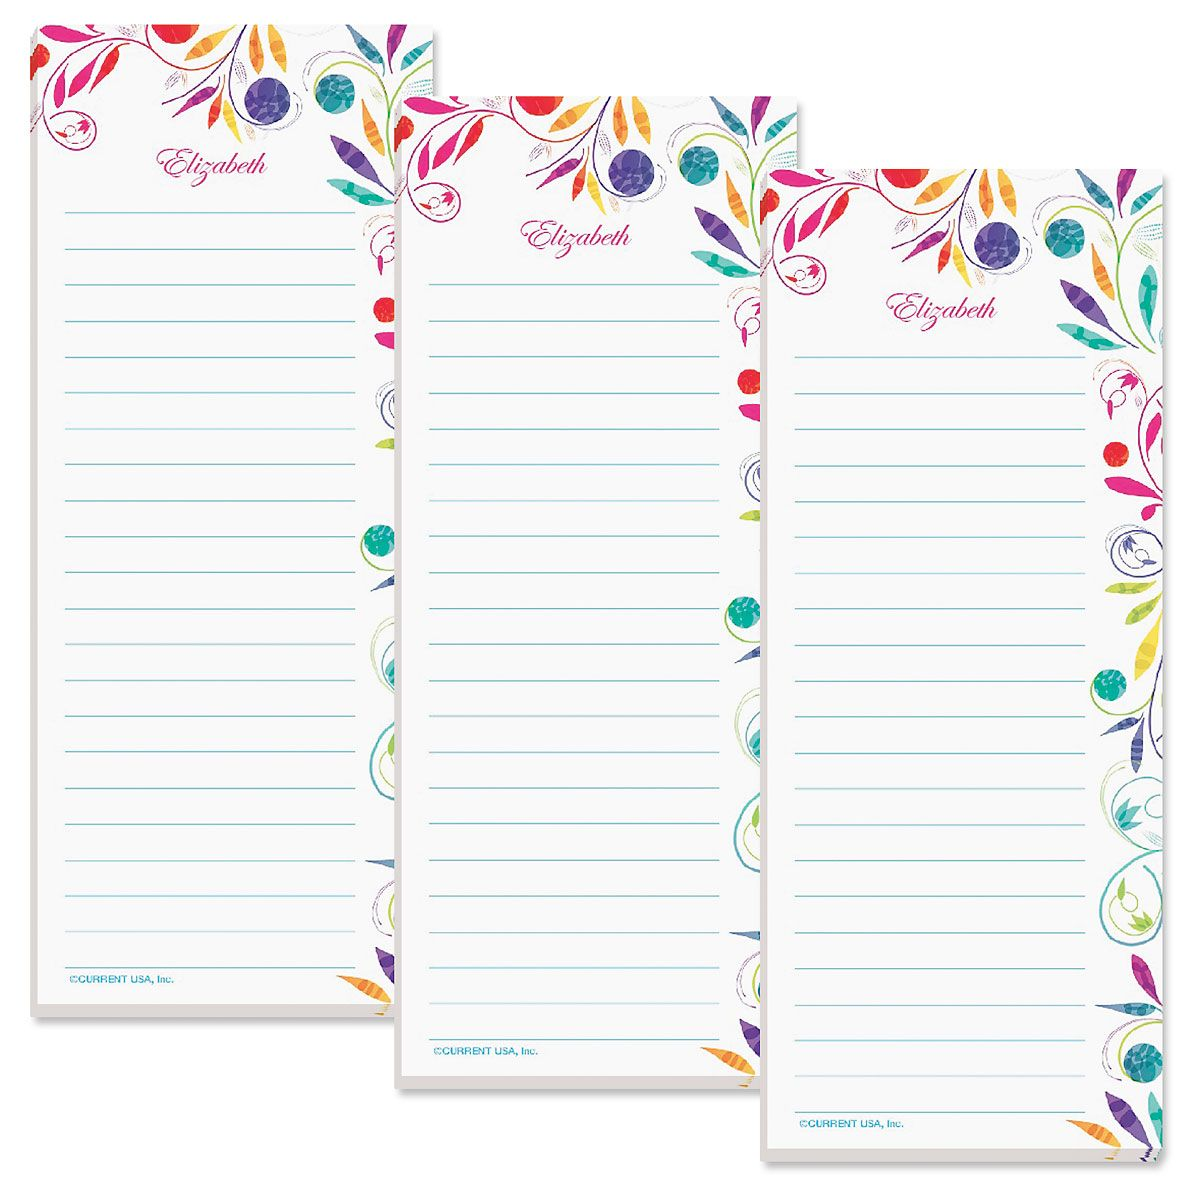 Color Swirl Lined Shopping List Pads